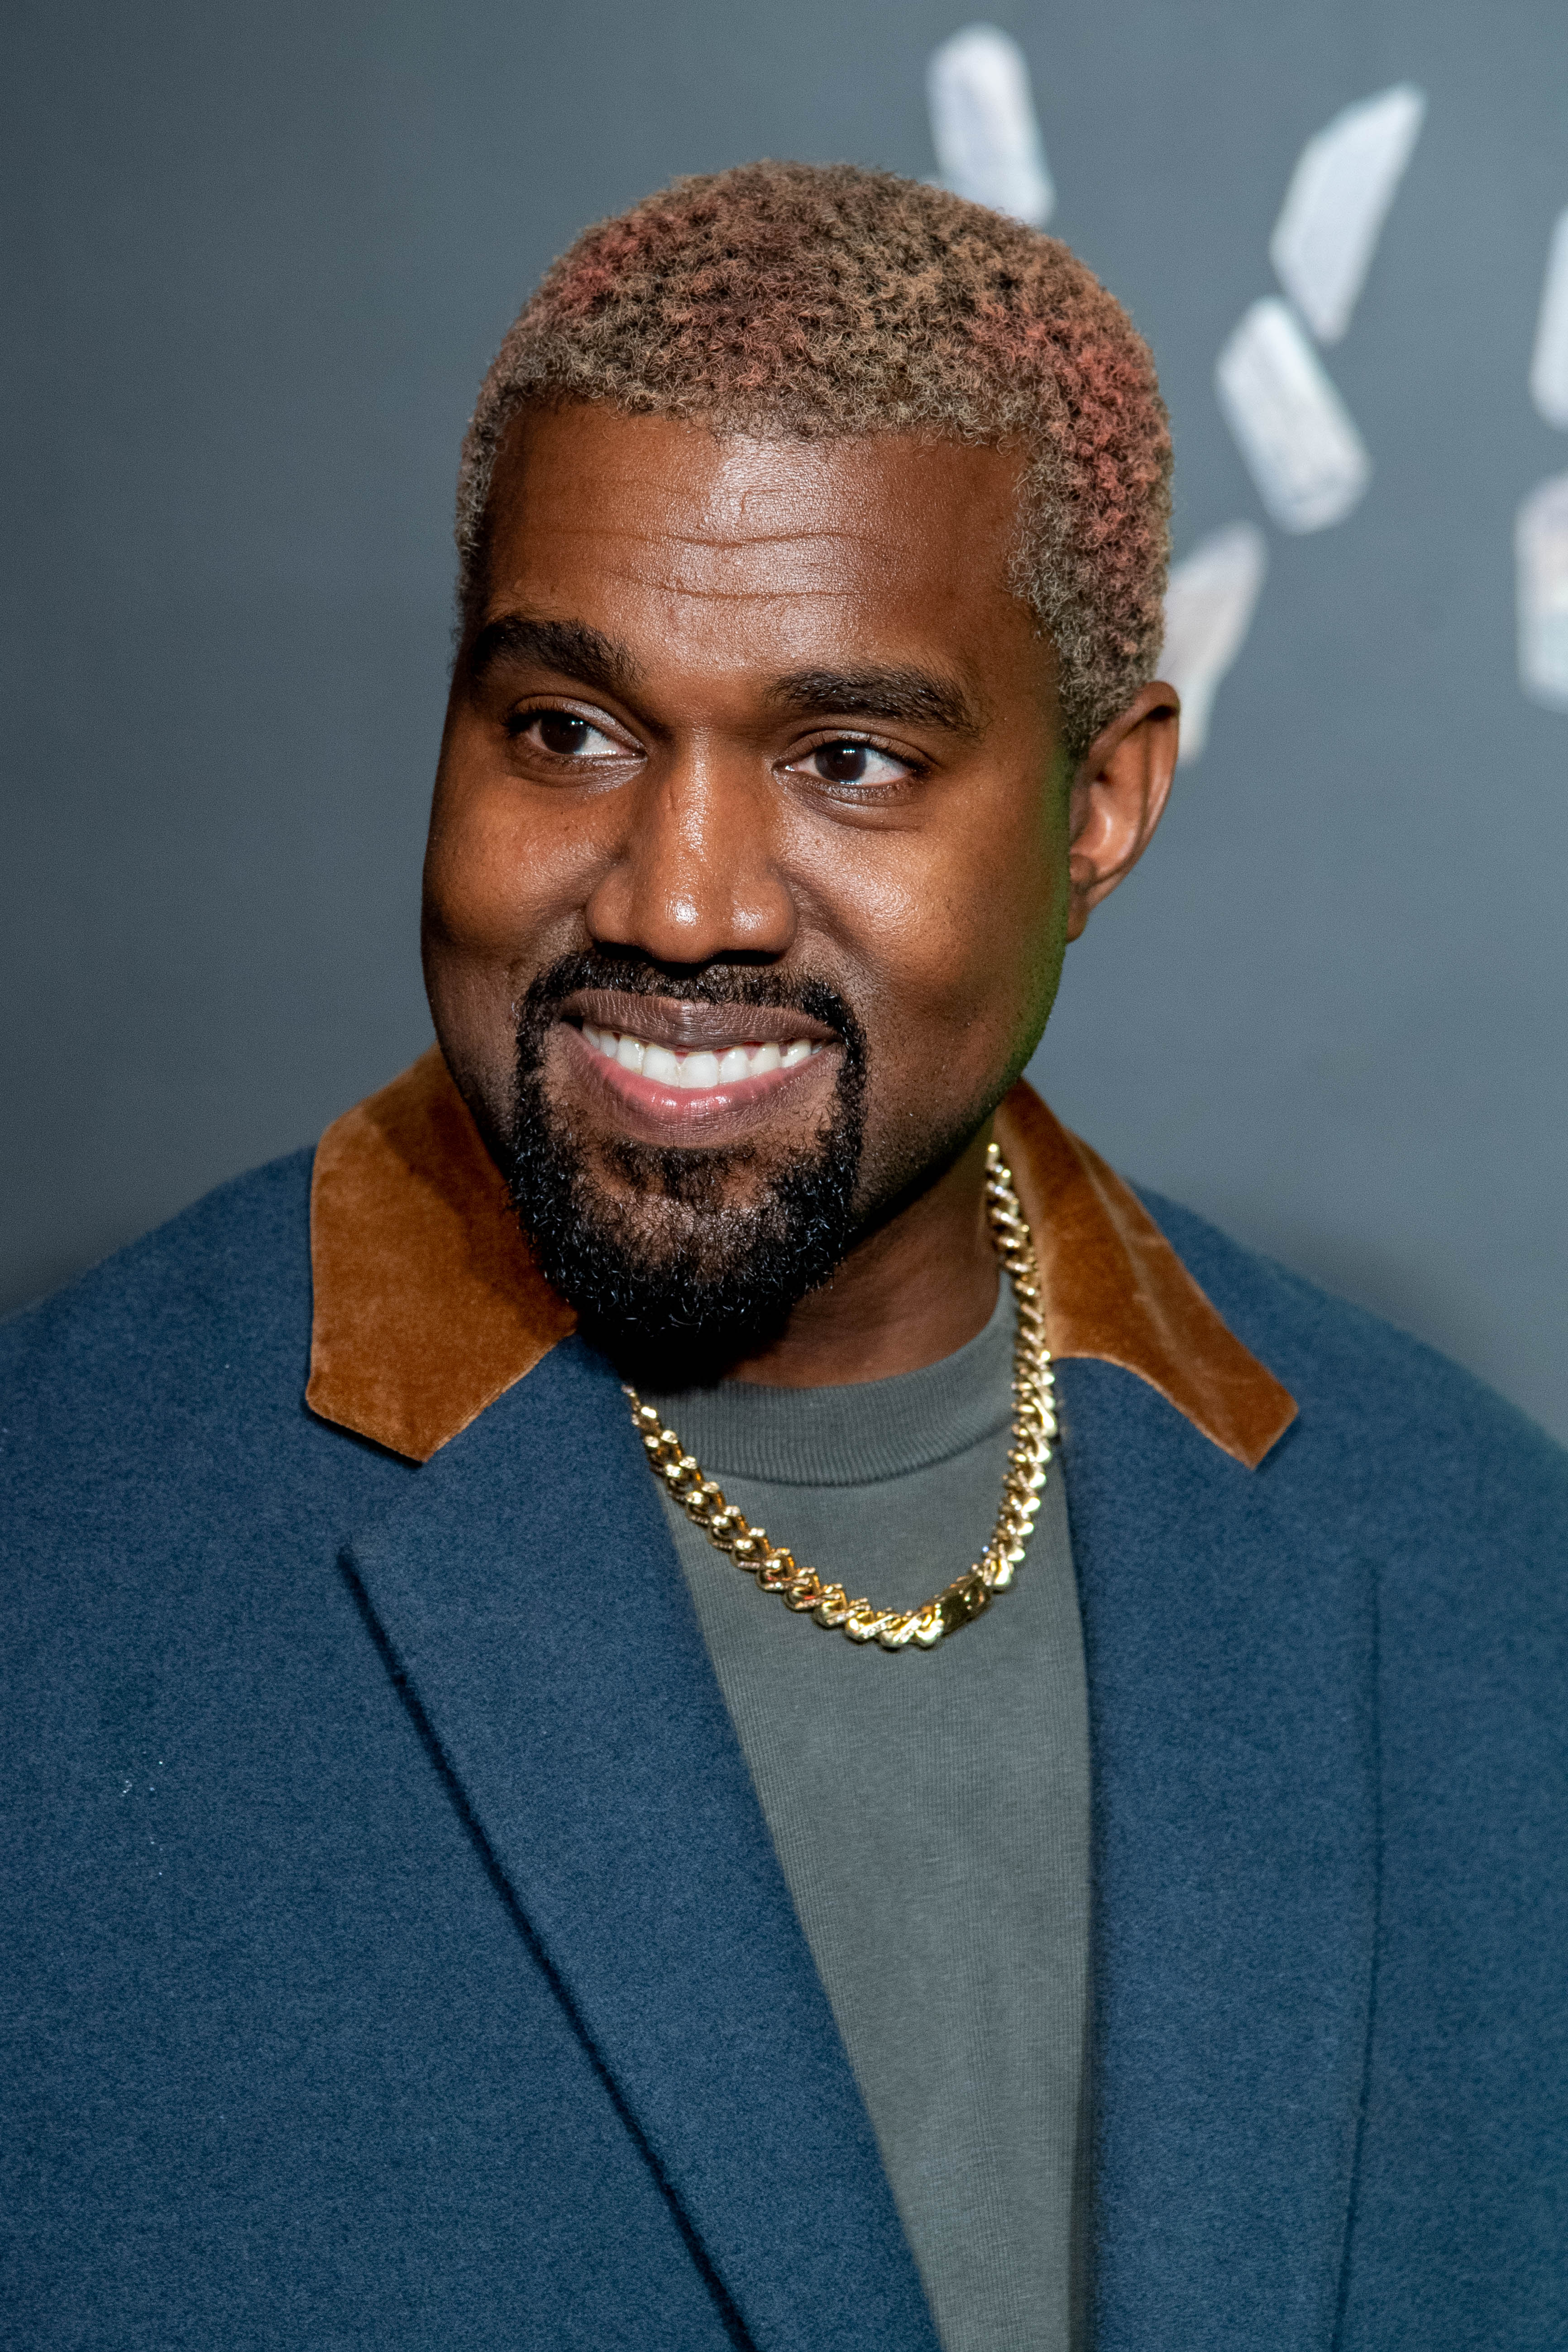 Kanye West Debuts New Rainbow Colored Hair In Calabasas